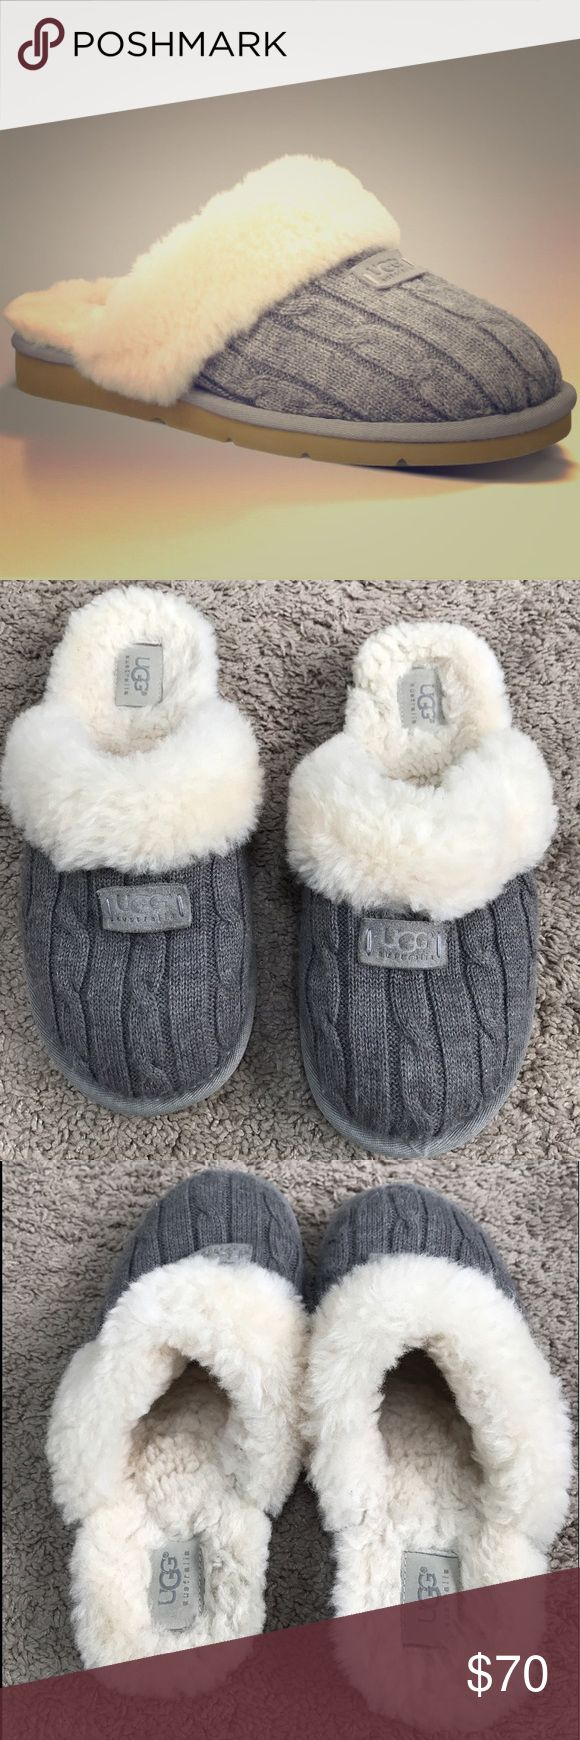 Grey Ugg Slippers Size 8 These Ugg Grey Slippers are adorable and comfy as can be!! They have only been worn a handful of times and have a ton of life left to them! UGG Shoes Slippers